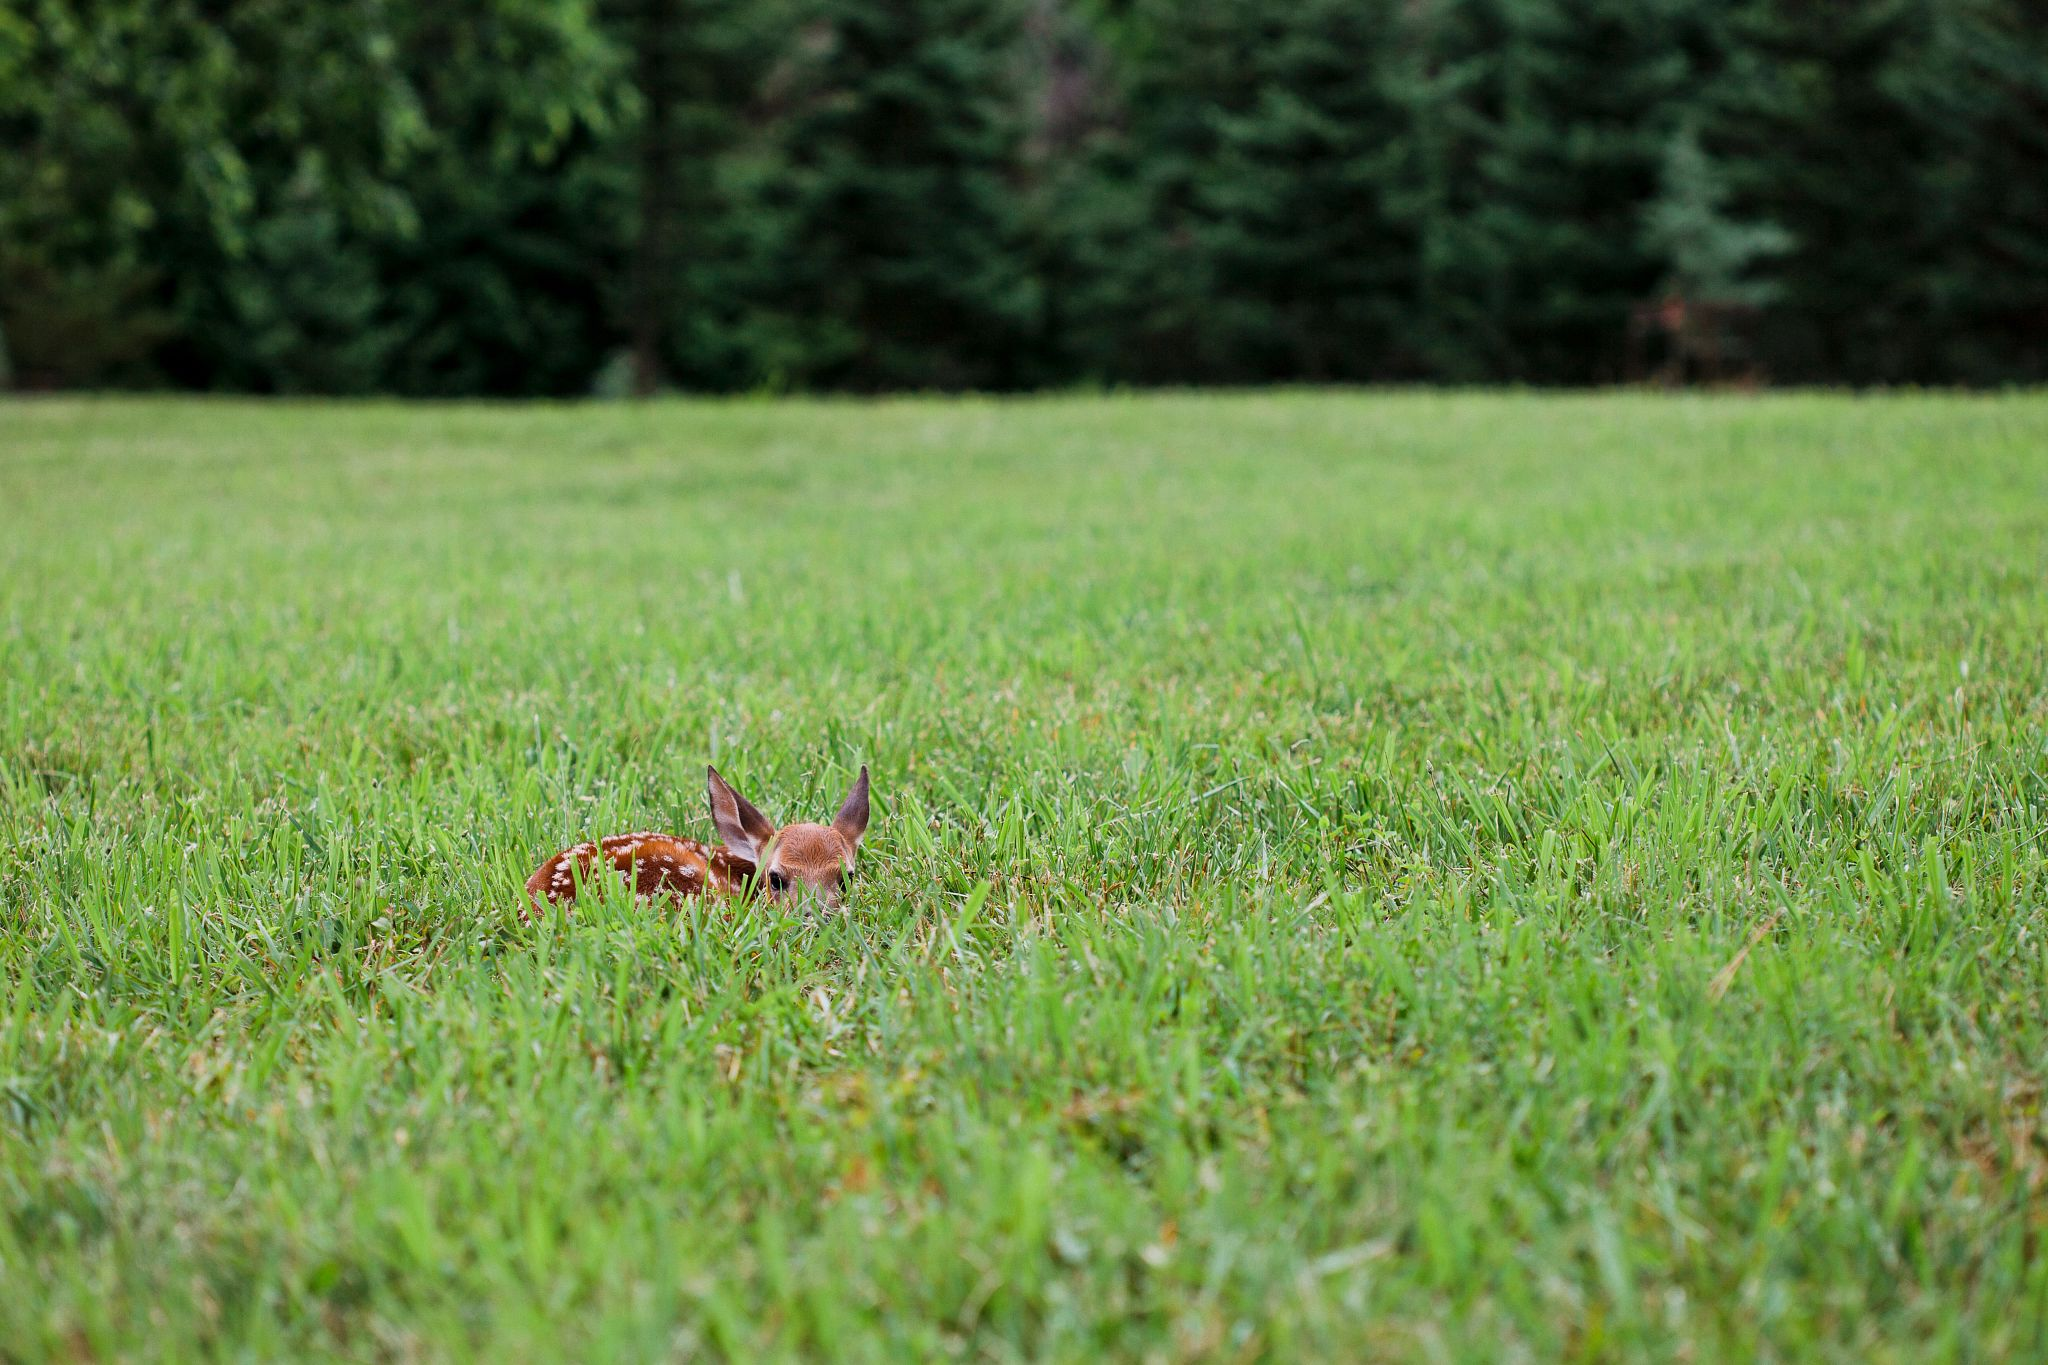 An image of a fawn resting in a field of grass.